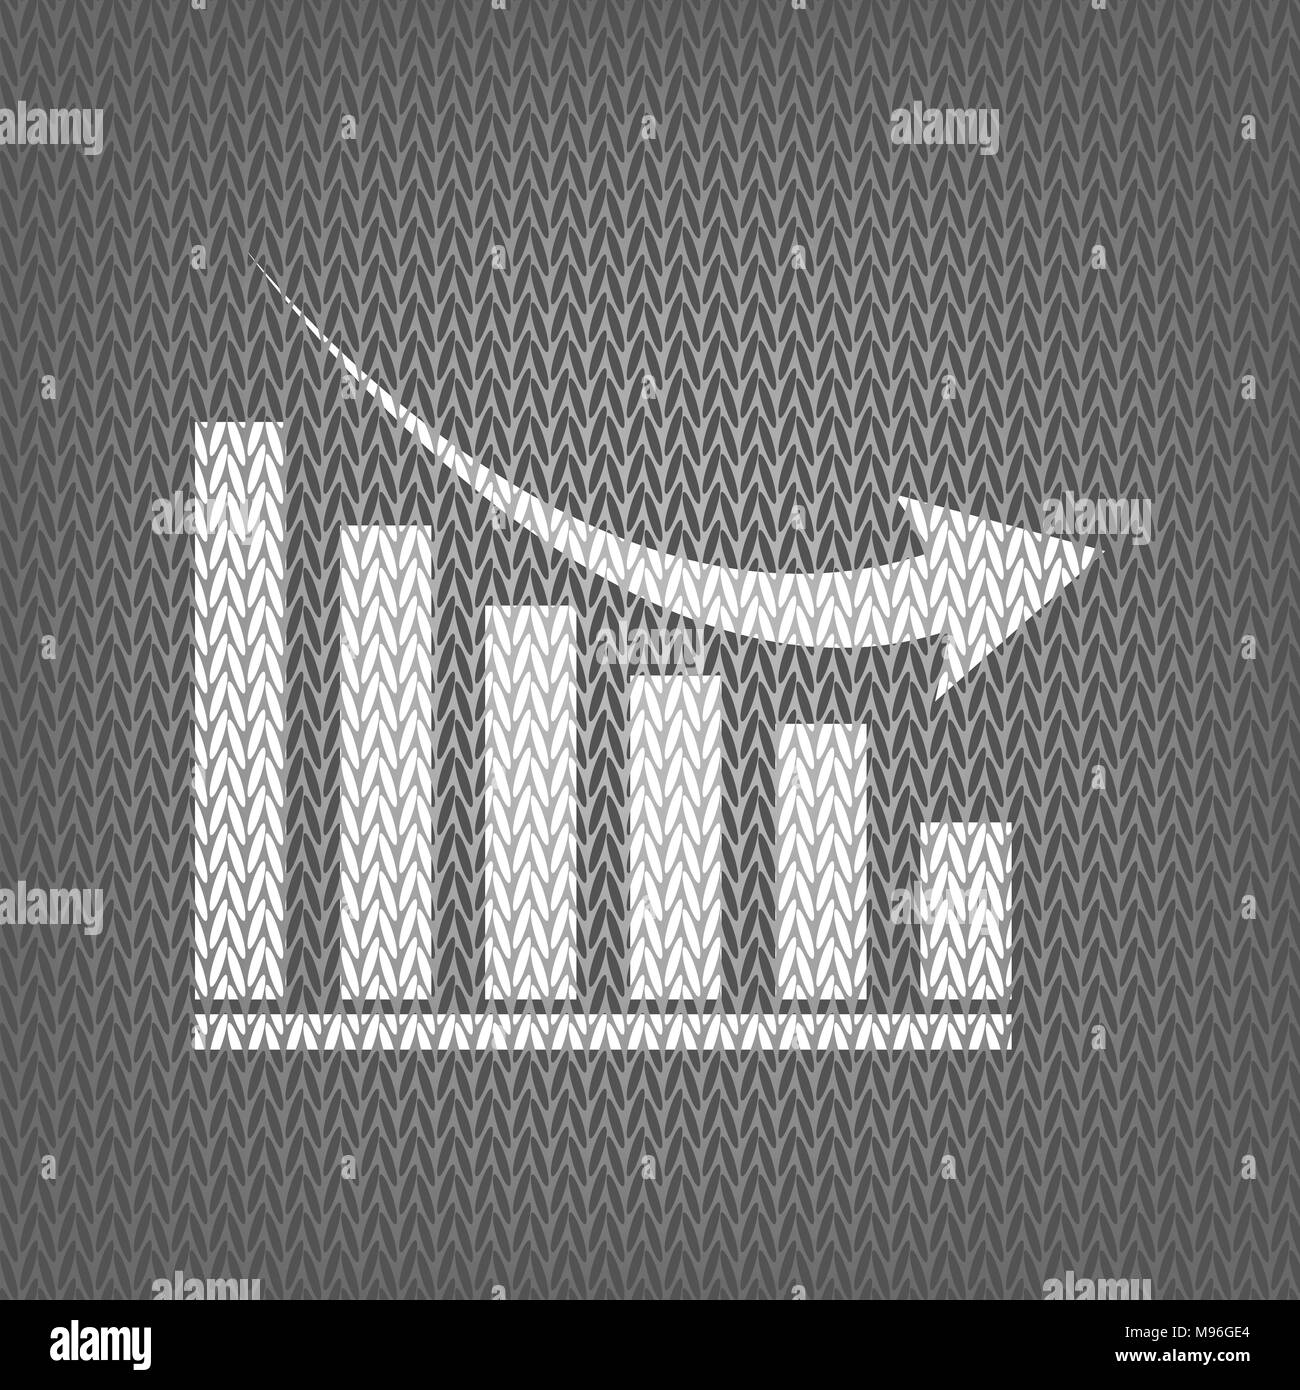 Declining graph sign. Vector. White knitted icon on gray knitted background. Isolated. - Stock Image